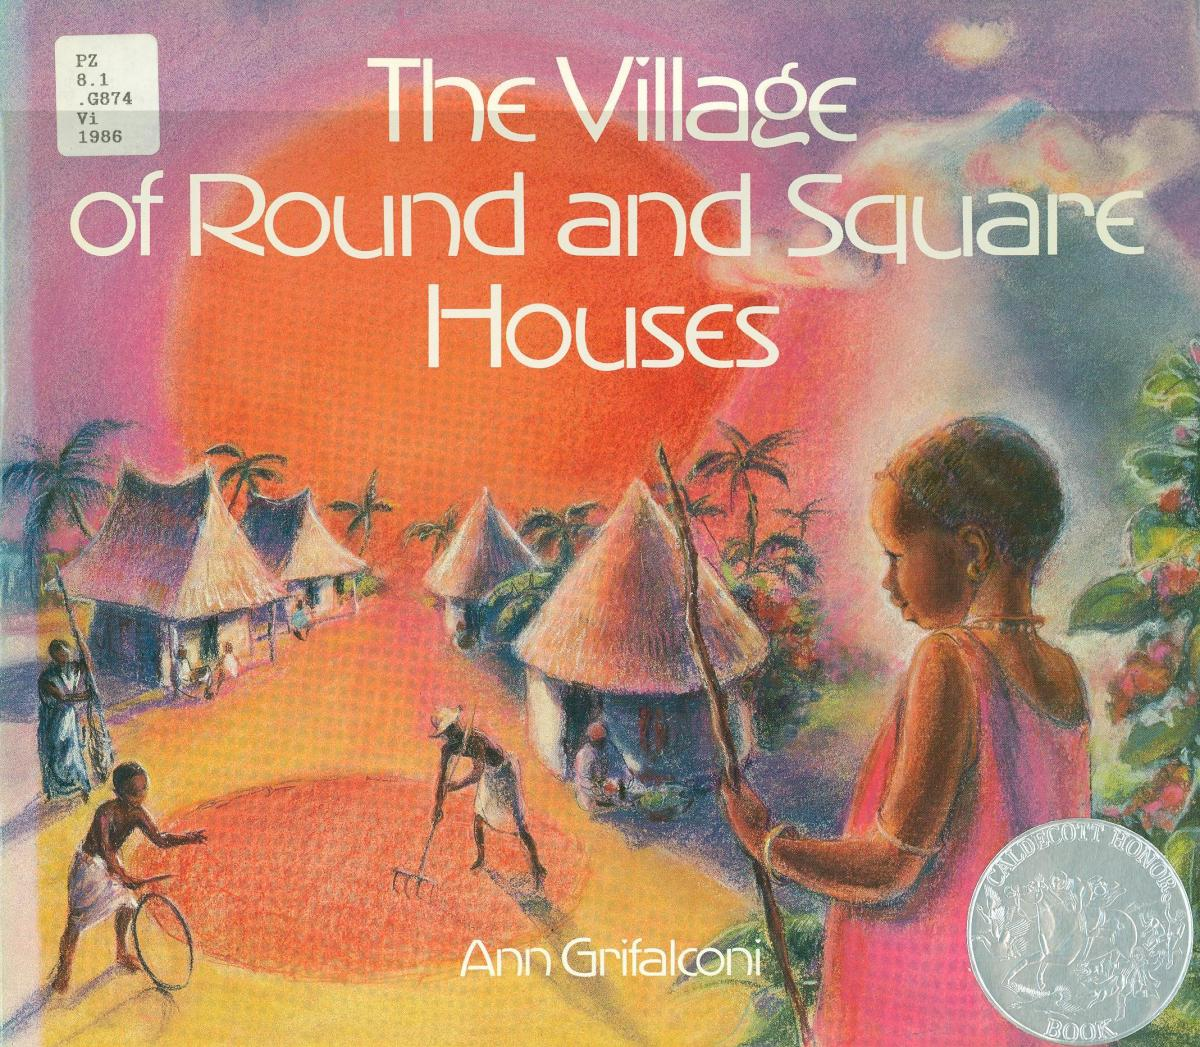 The Village of Round and Square Houses - book cover